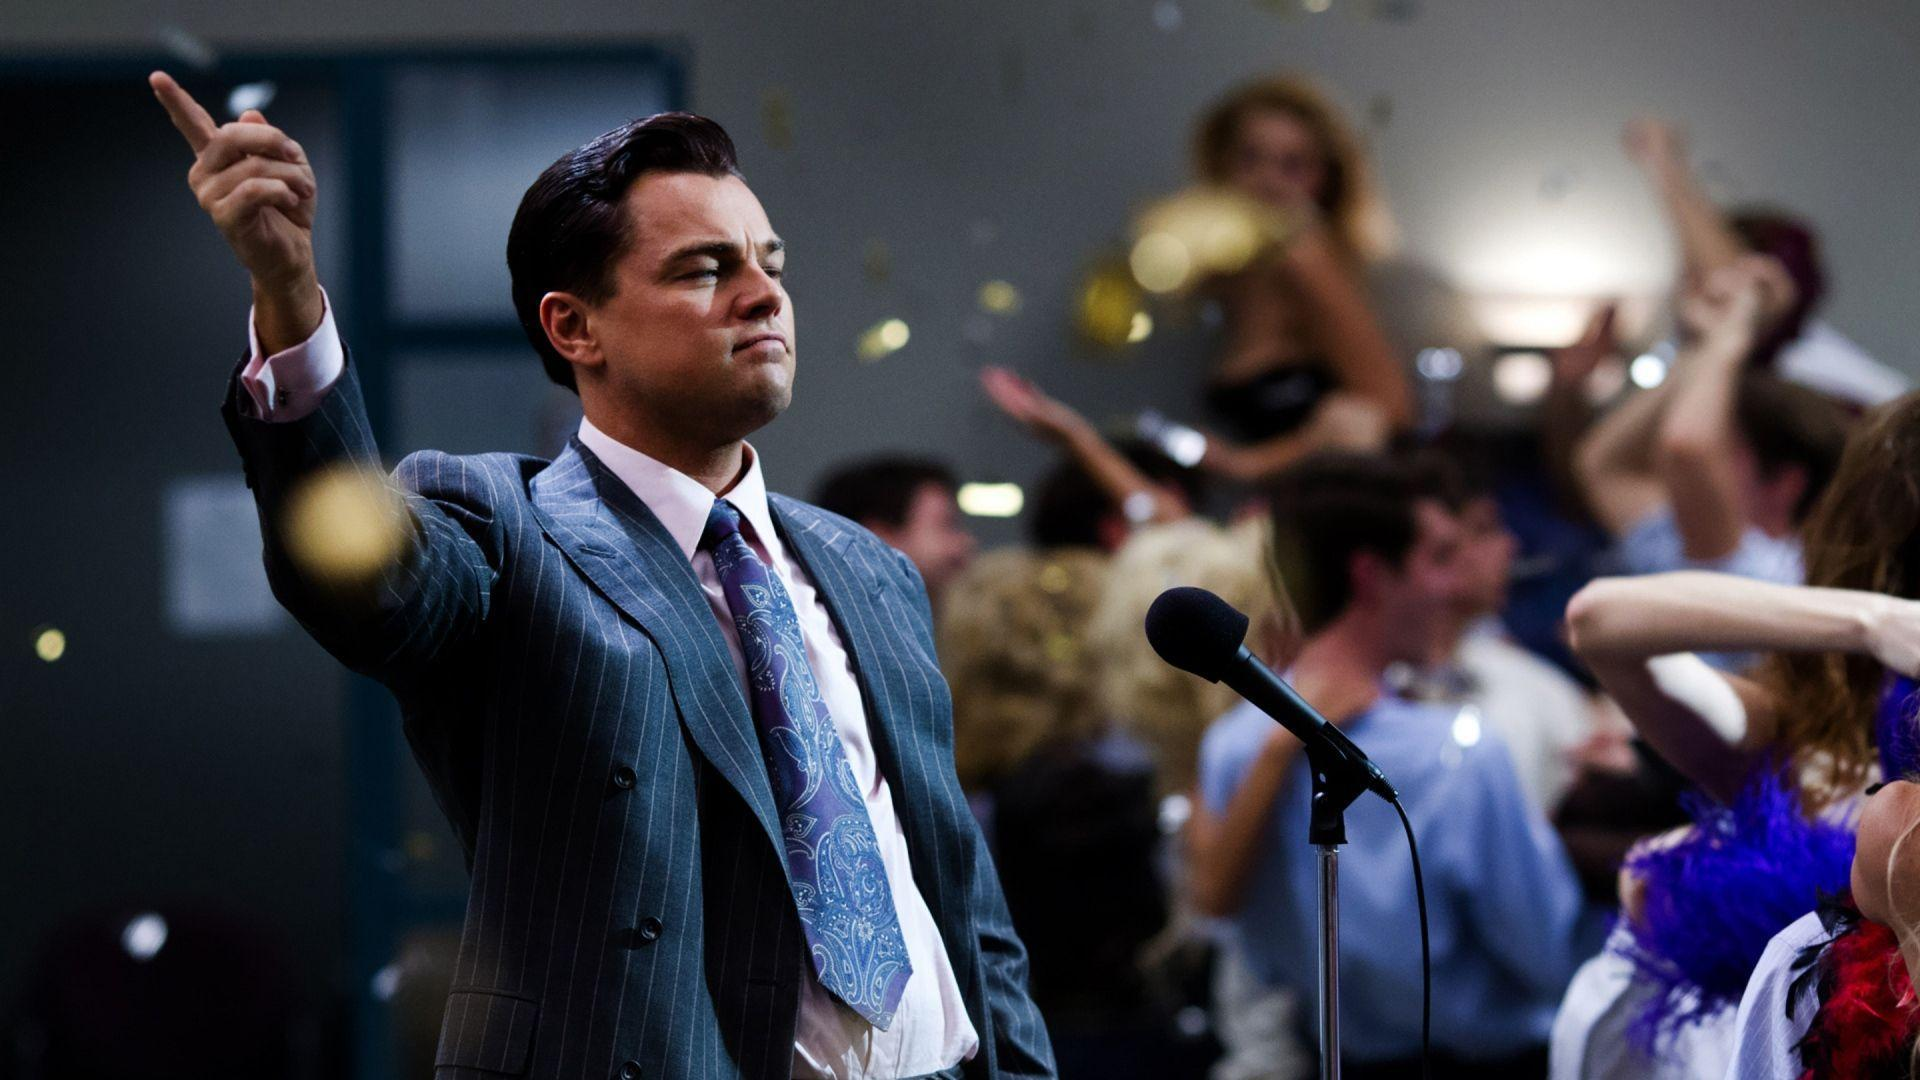 Download Wallpapers 1920x1080 The wolf of wall street, Leonardo